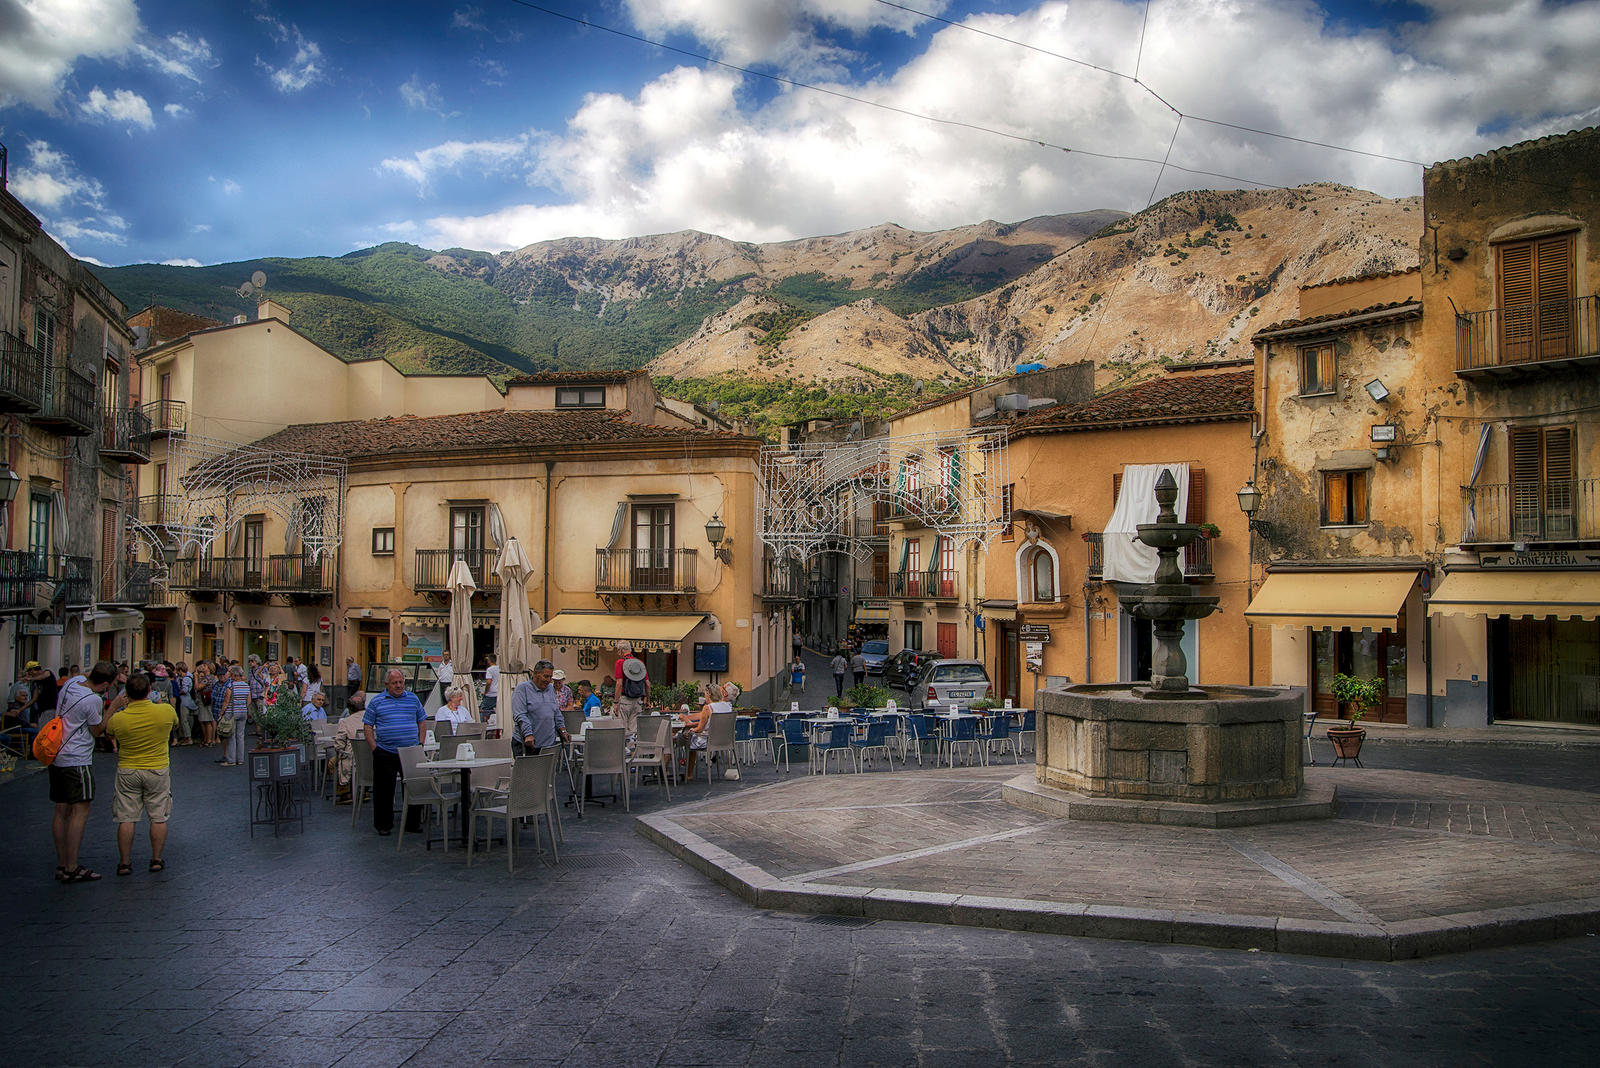 Castelbuono in the Madonie Mountains